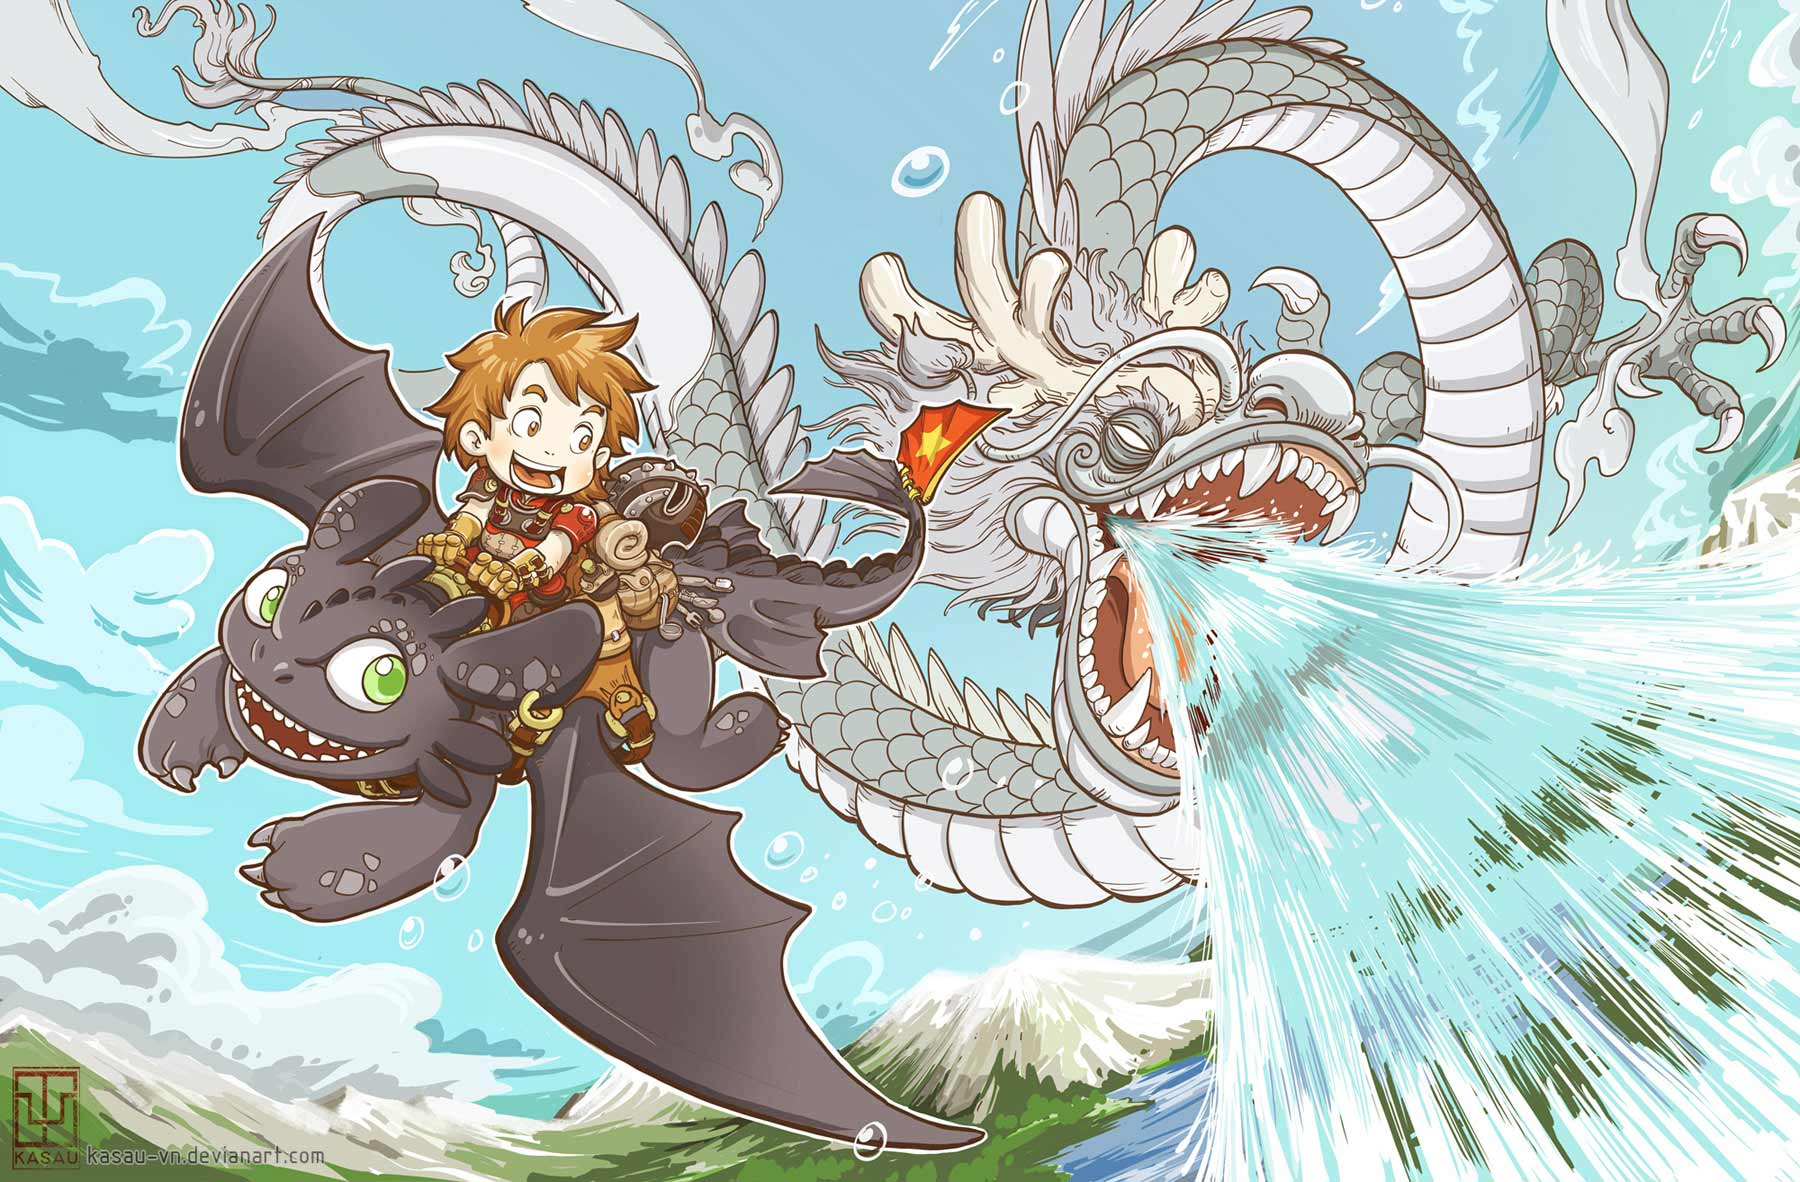 Fan art friday how to train your dragon by techgnotic on deviantart ccuart Image collections